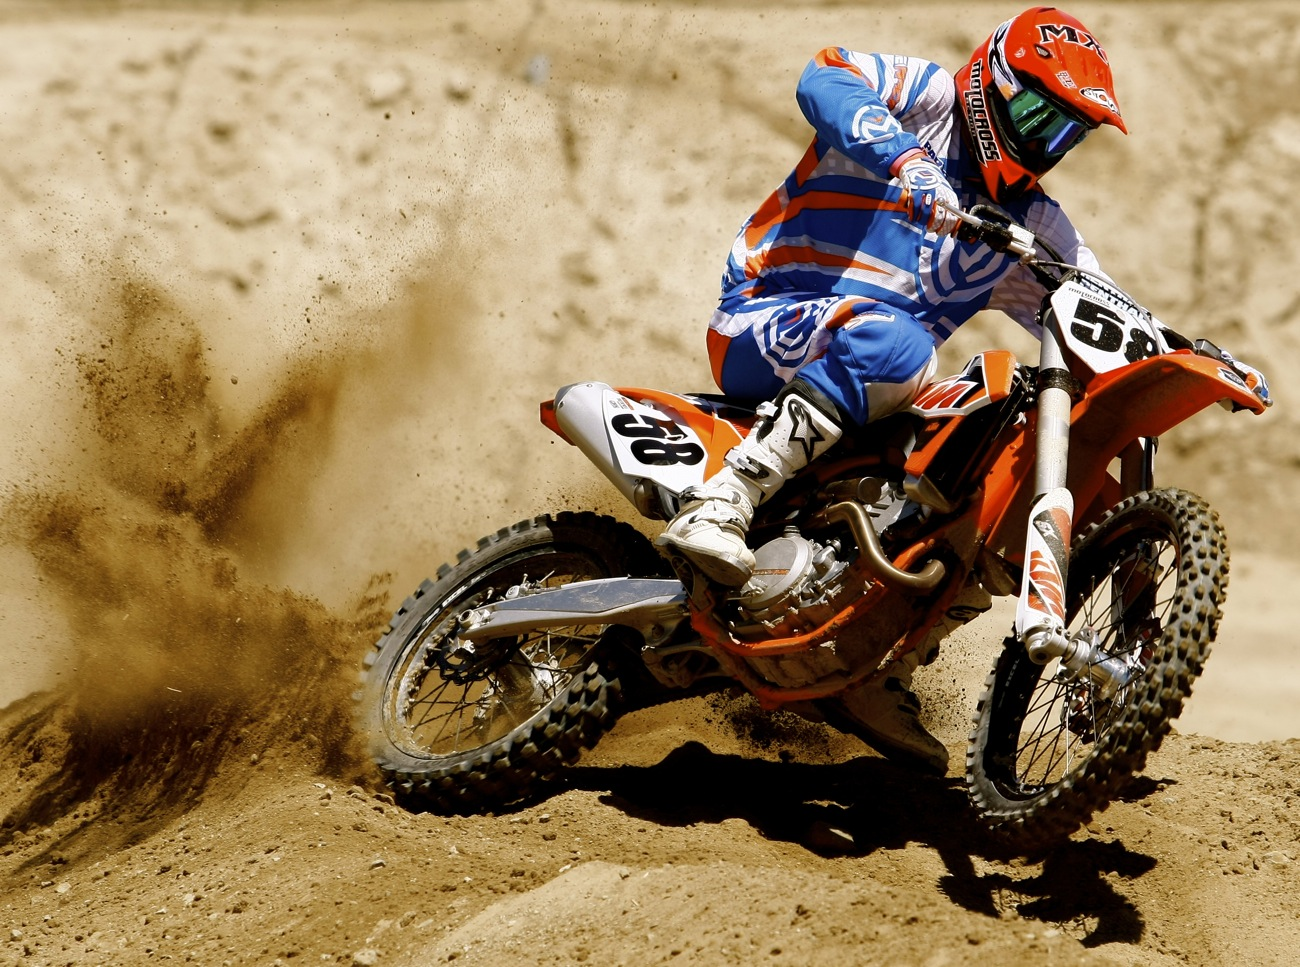 Mxas 2015 Ktm 350sxf Motocross Test Non Organic Winner Xcf 350 Wiring Diagrams Q Were The Big Four Wrong Not To Embrace Idea